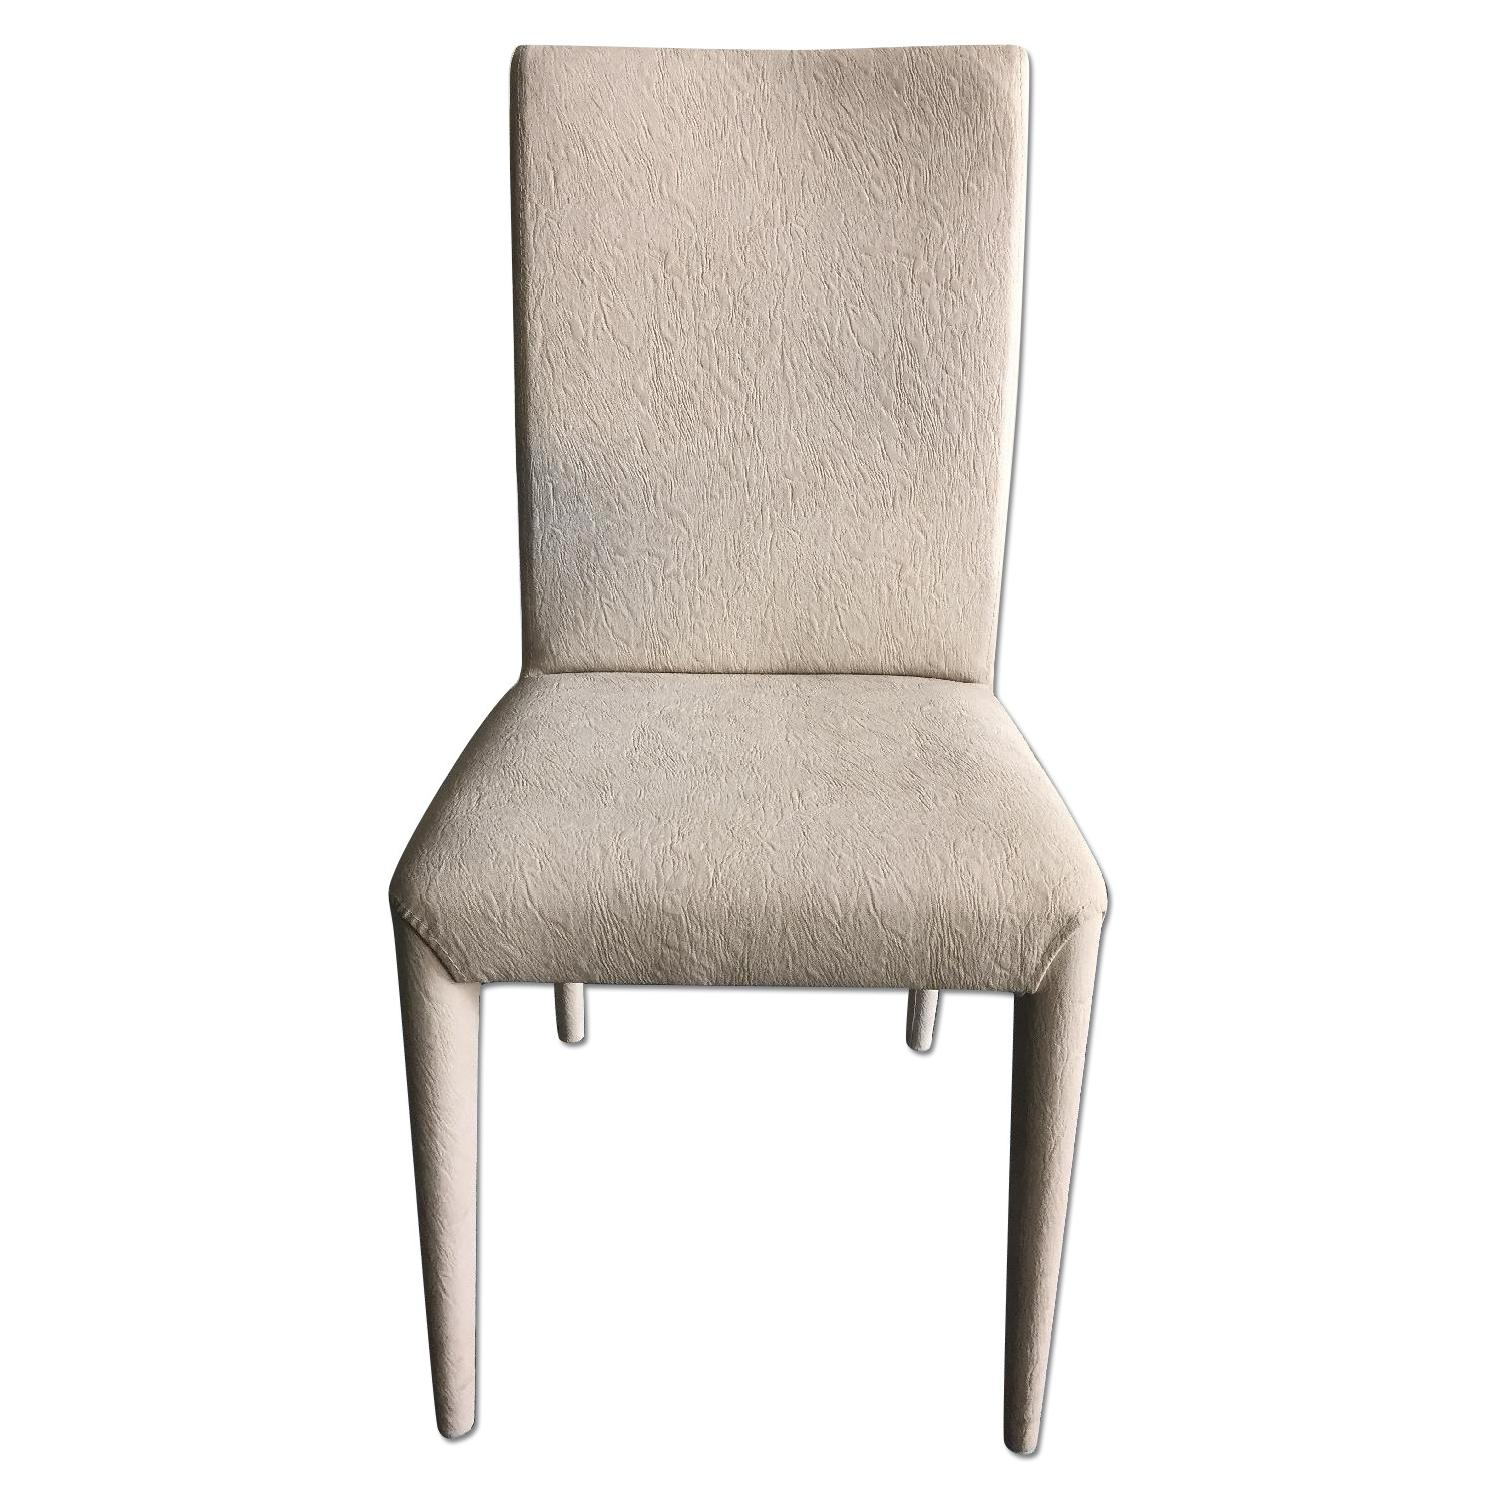 Lazzoni Natural Dining Chair - image-0